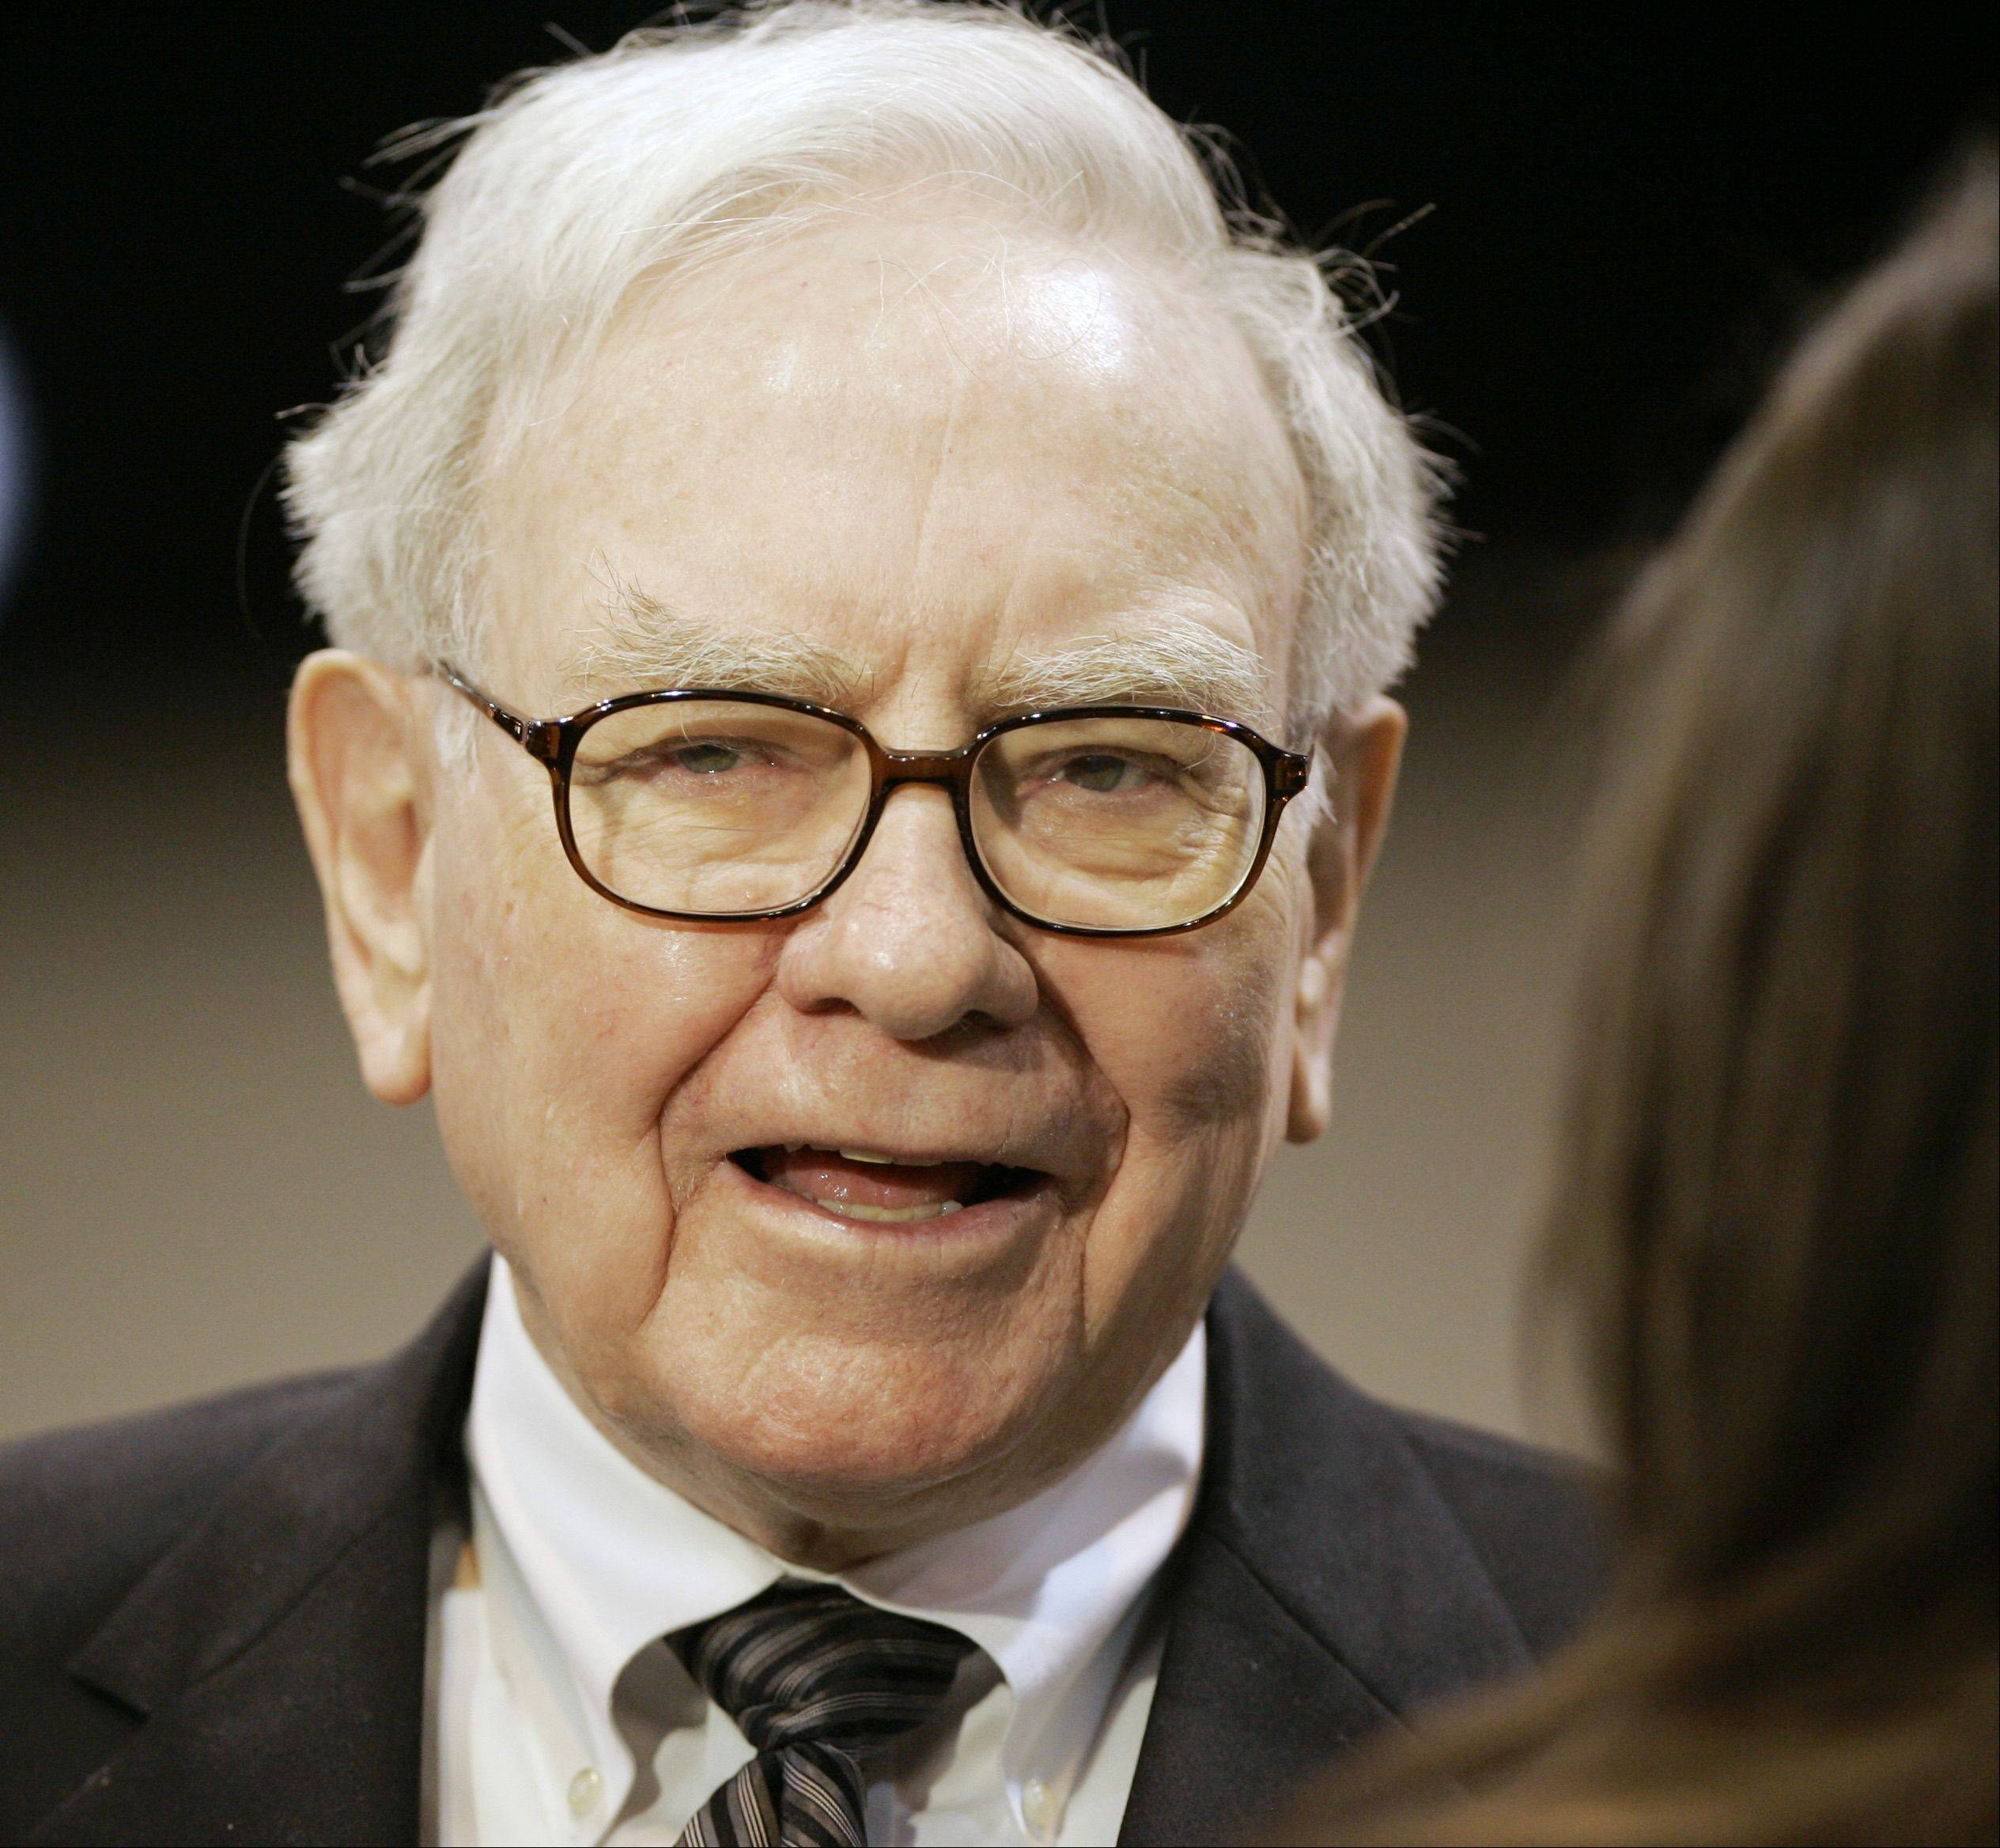 Billionaire investor Warren Buffett said Thursday that U.S. economic growth has slowed in the last two months as fears about Europe�s debt woes mounted.